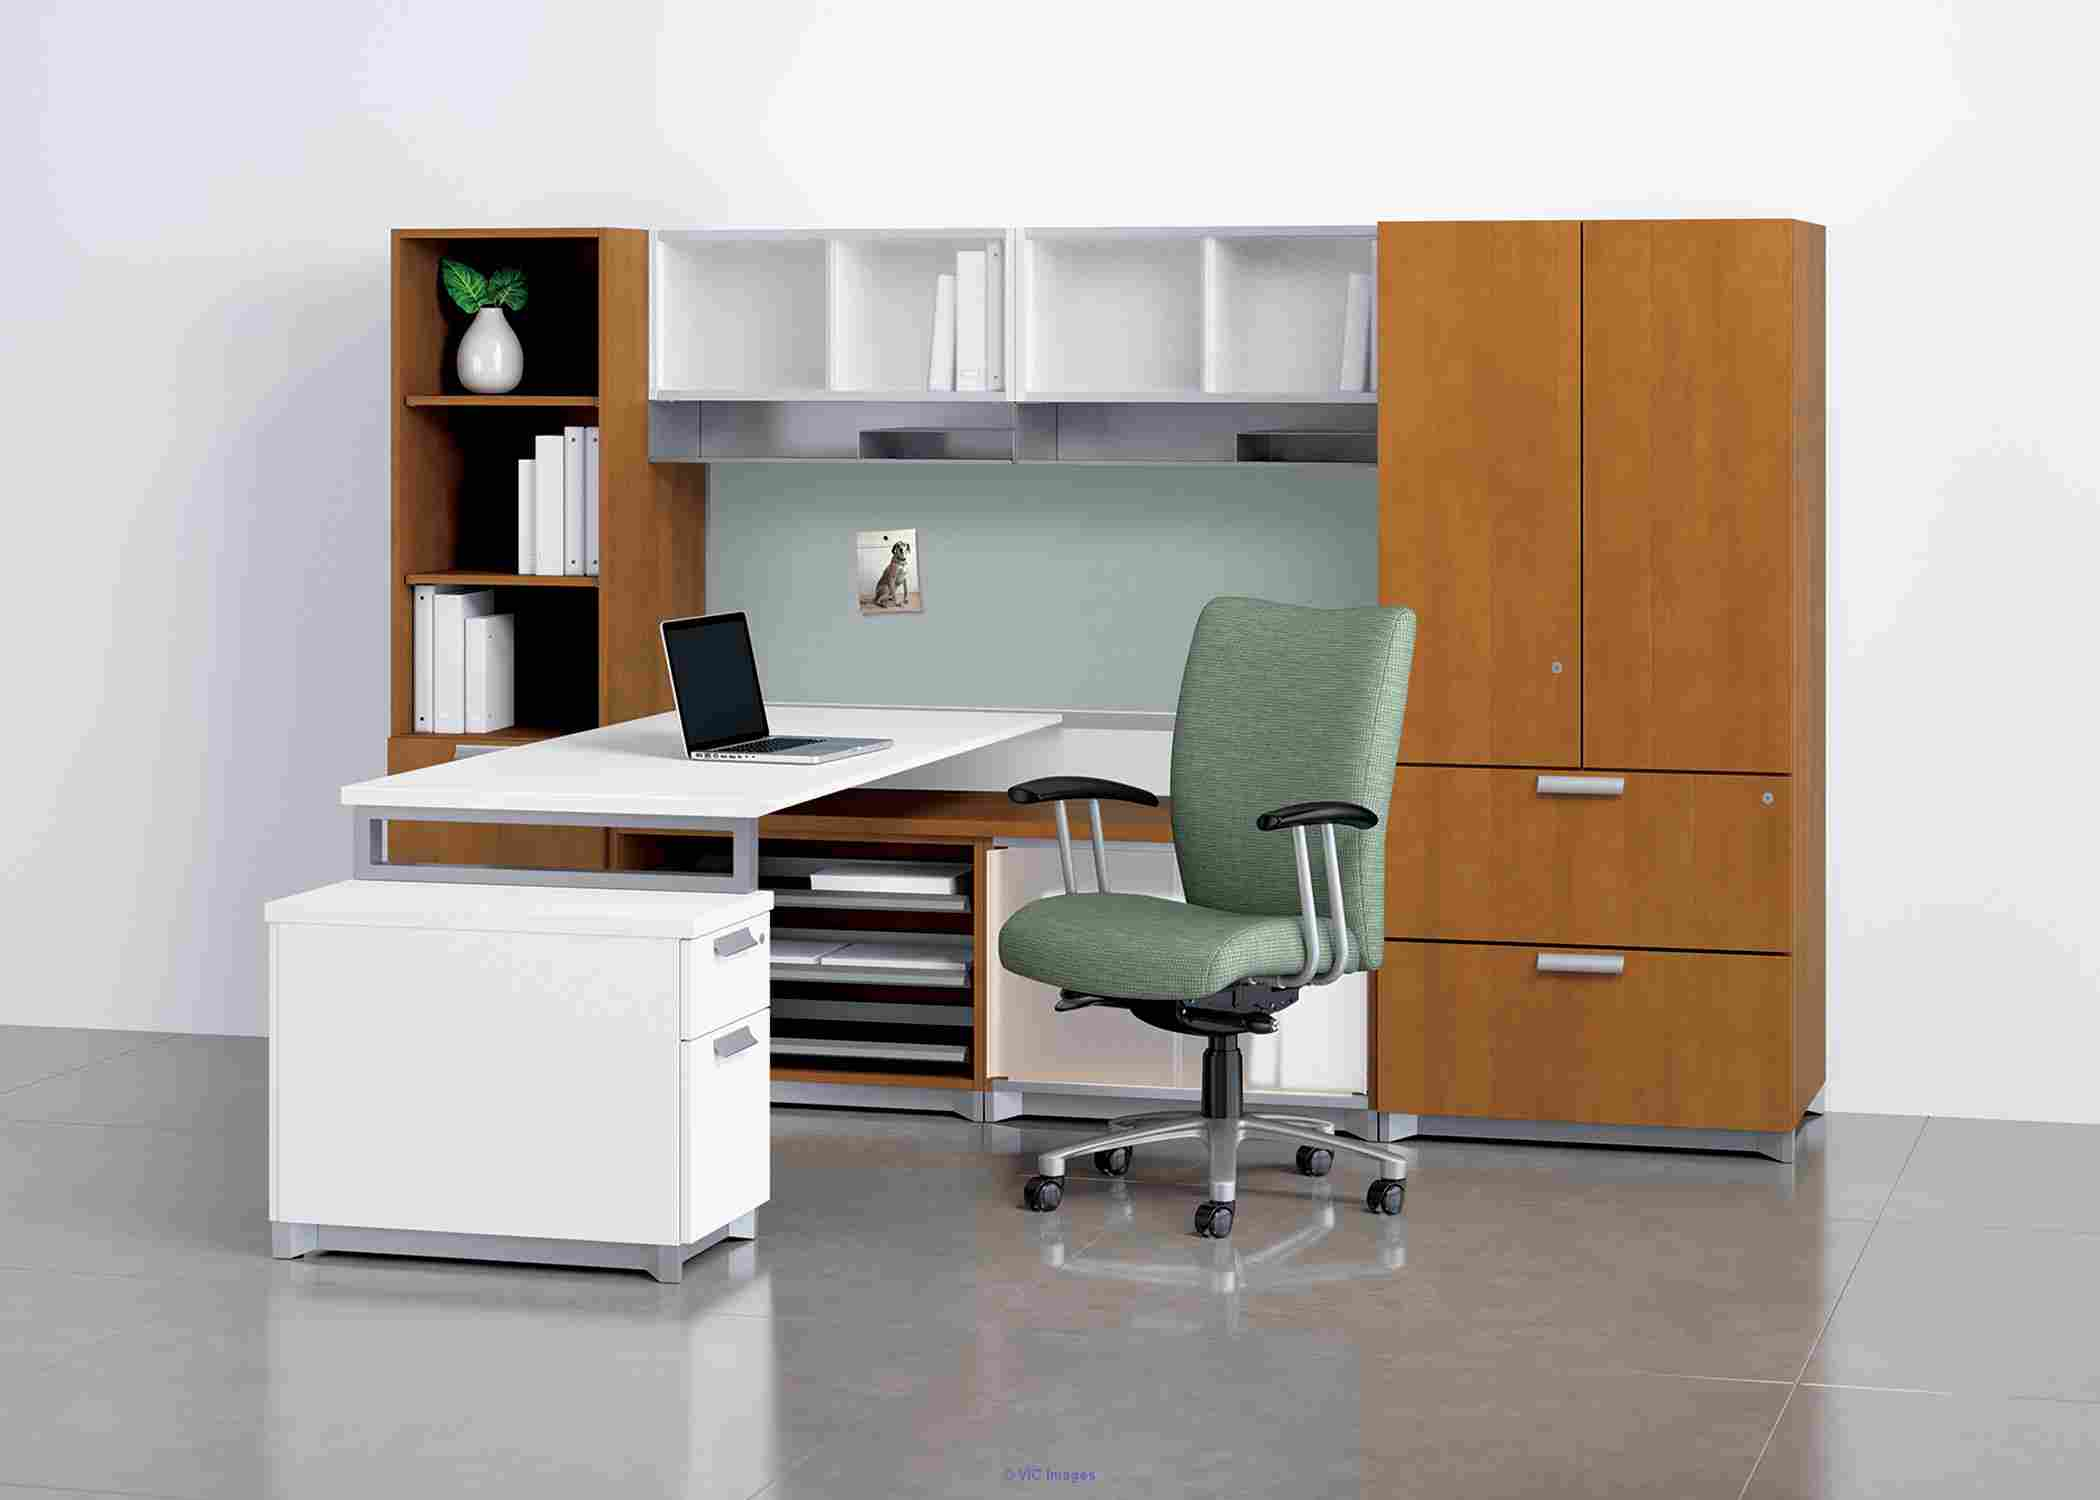 Cubicle Furniture Systems Ottawa, Ontario, Canada Classifieds